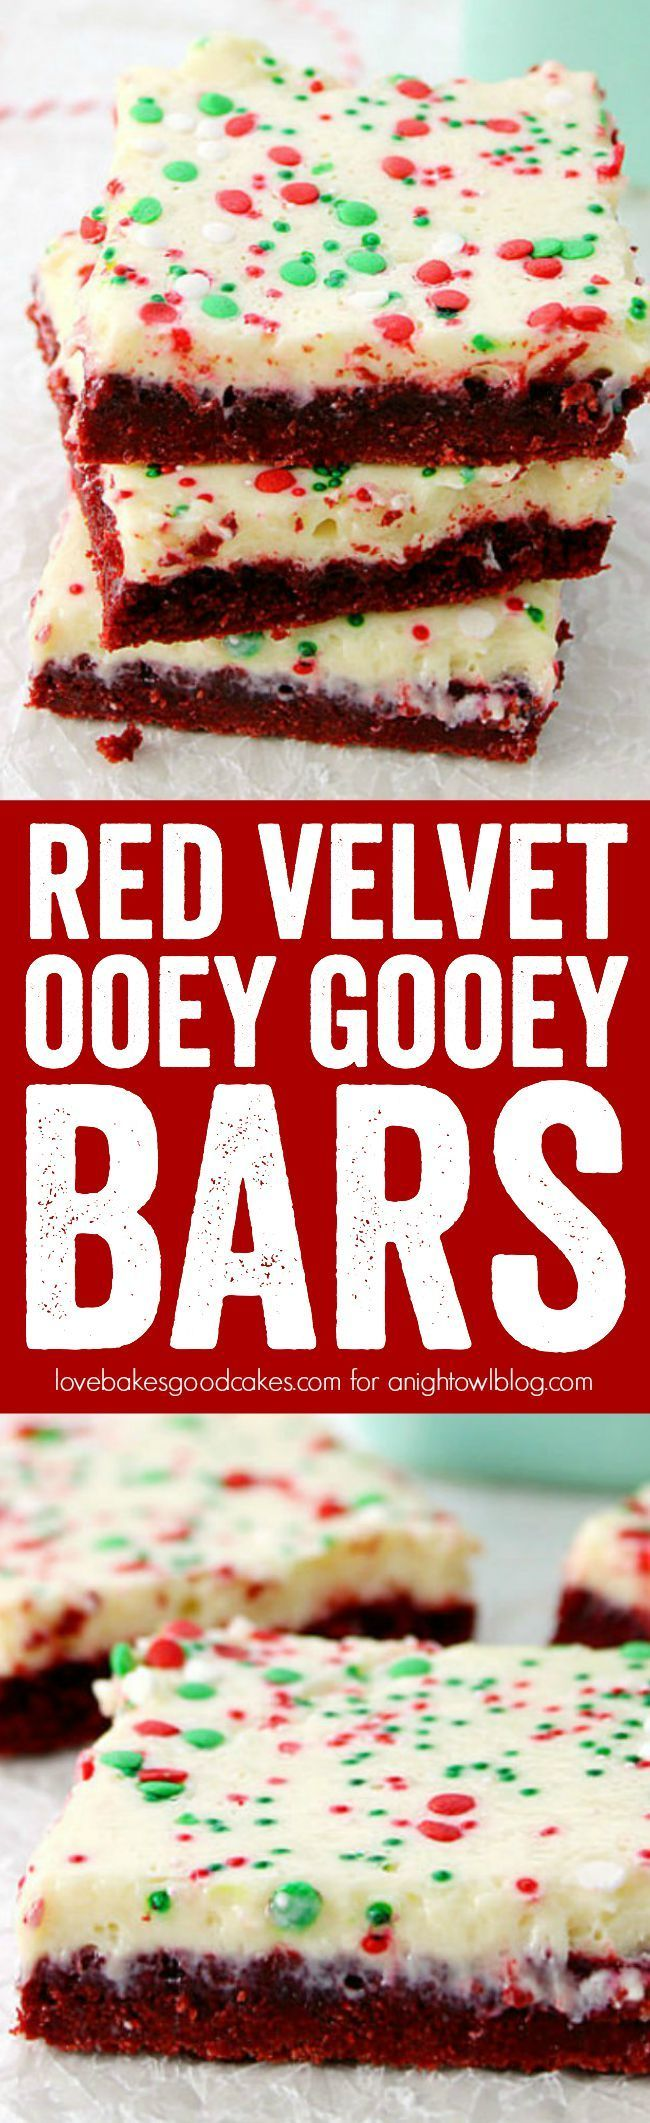 These Red Velvet Ooey Gooey Bars are easy but impressive. They're the perfect holiday treat!